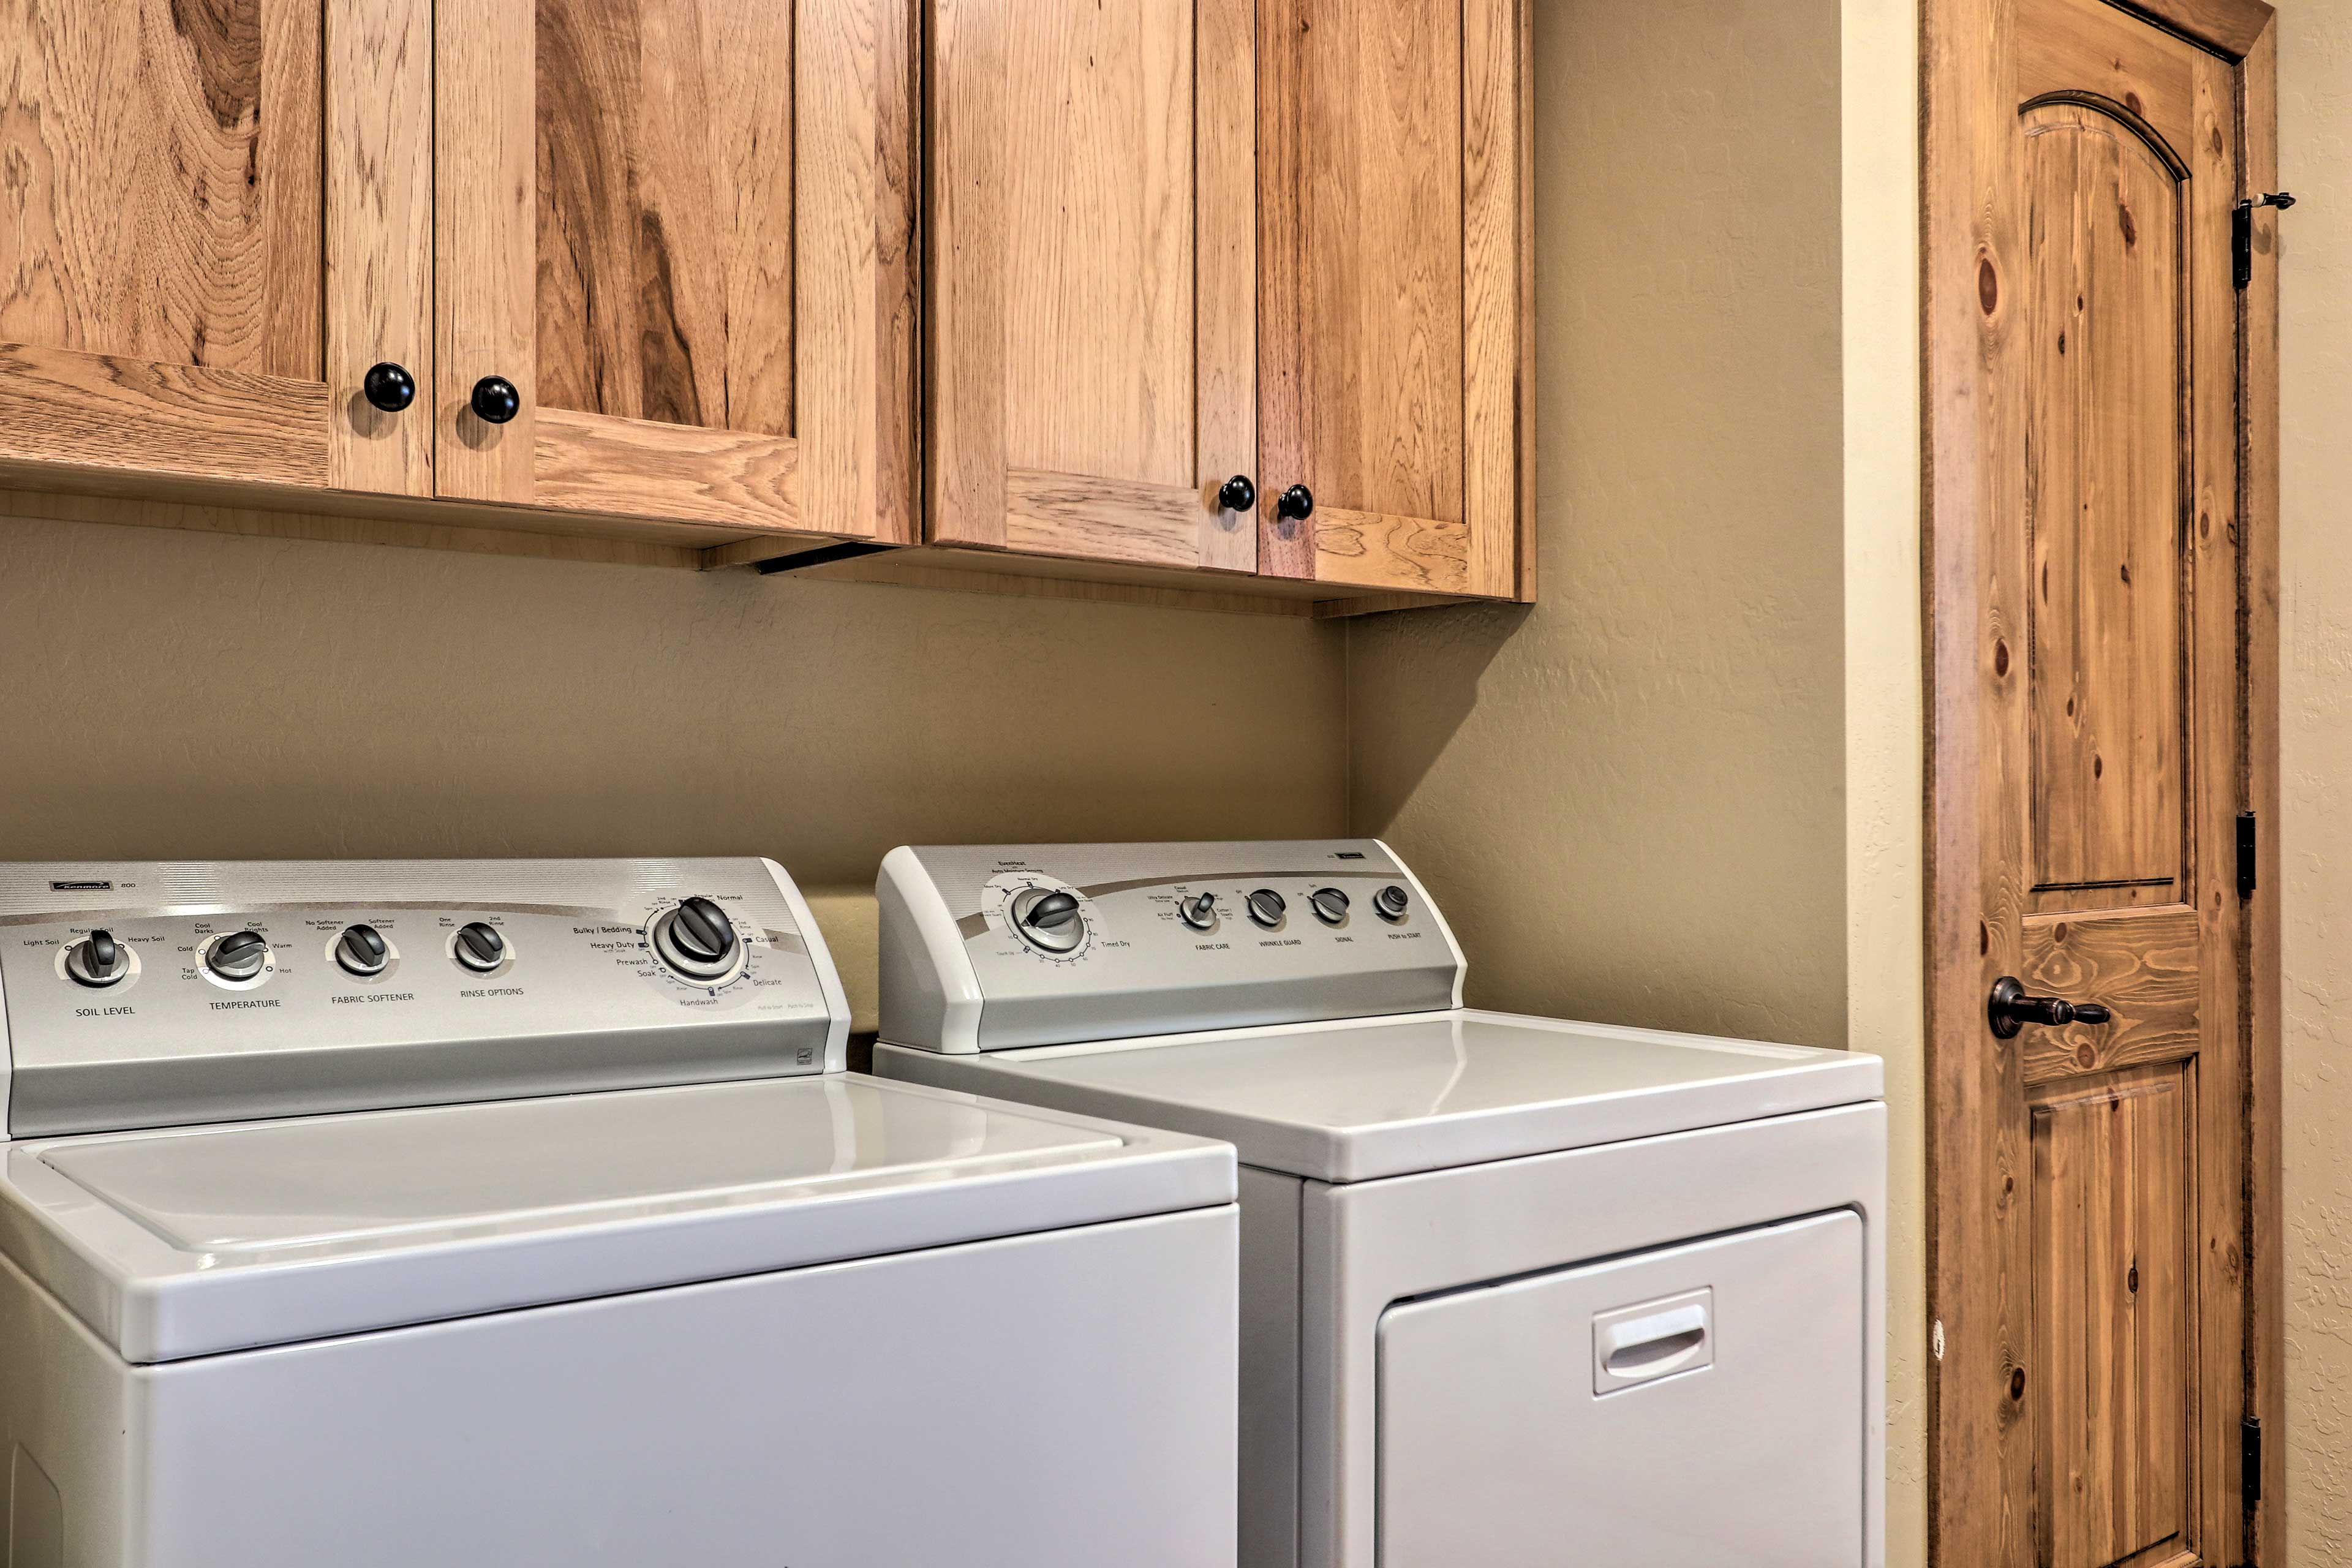 Give adventure gear a spin through the in-home laundry machines.